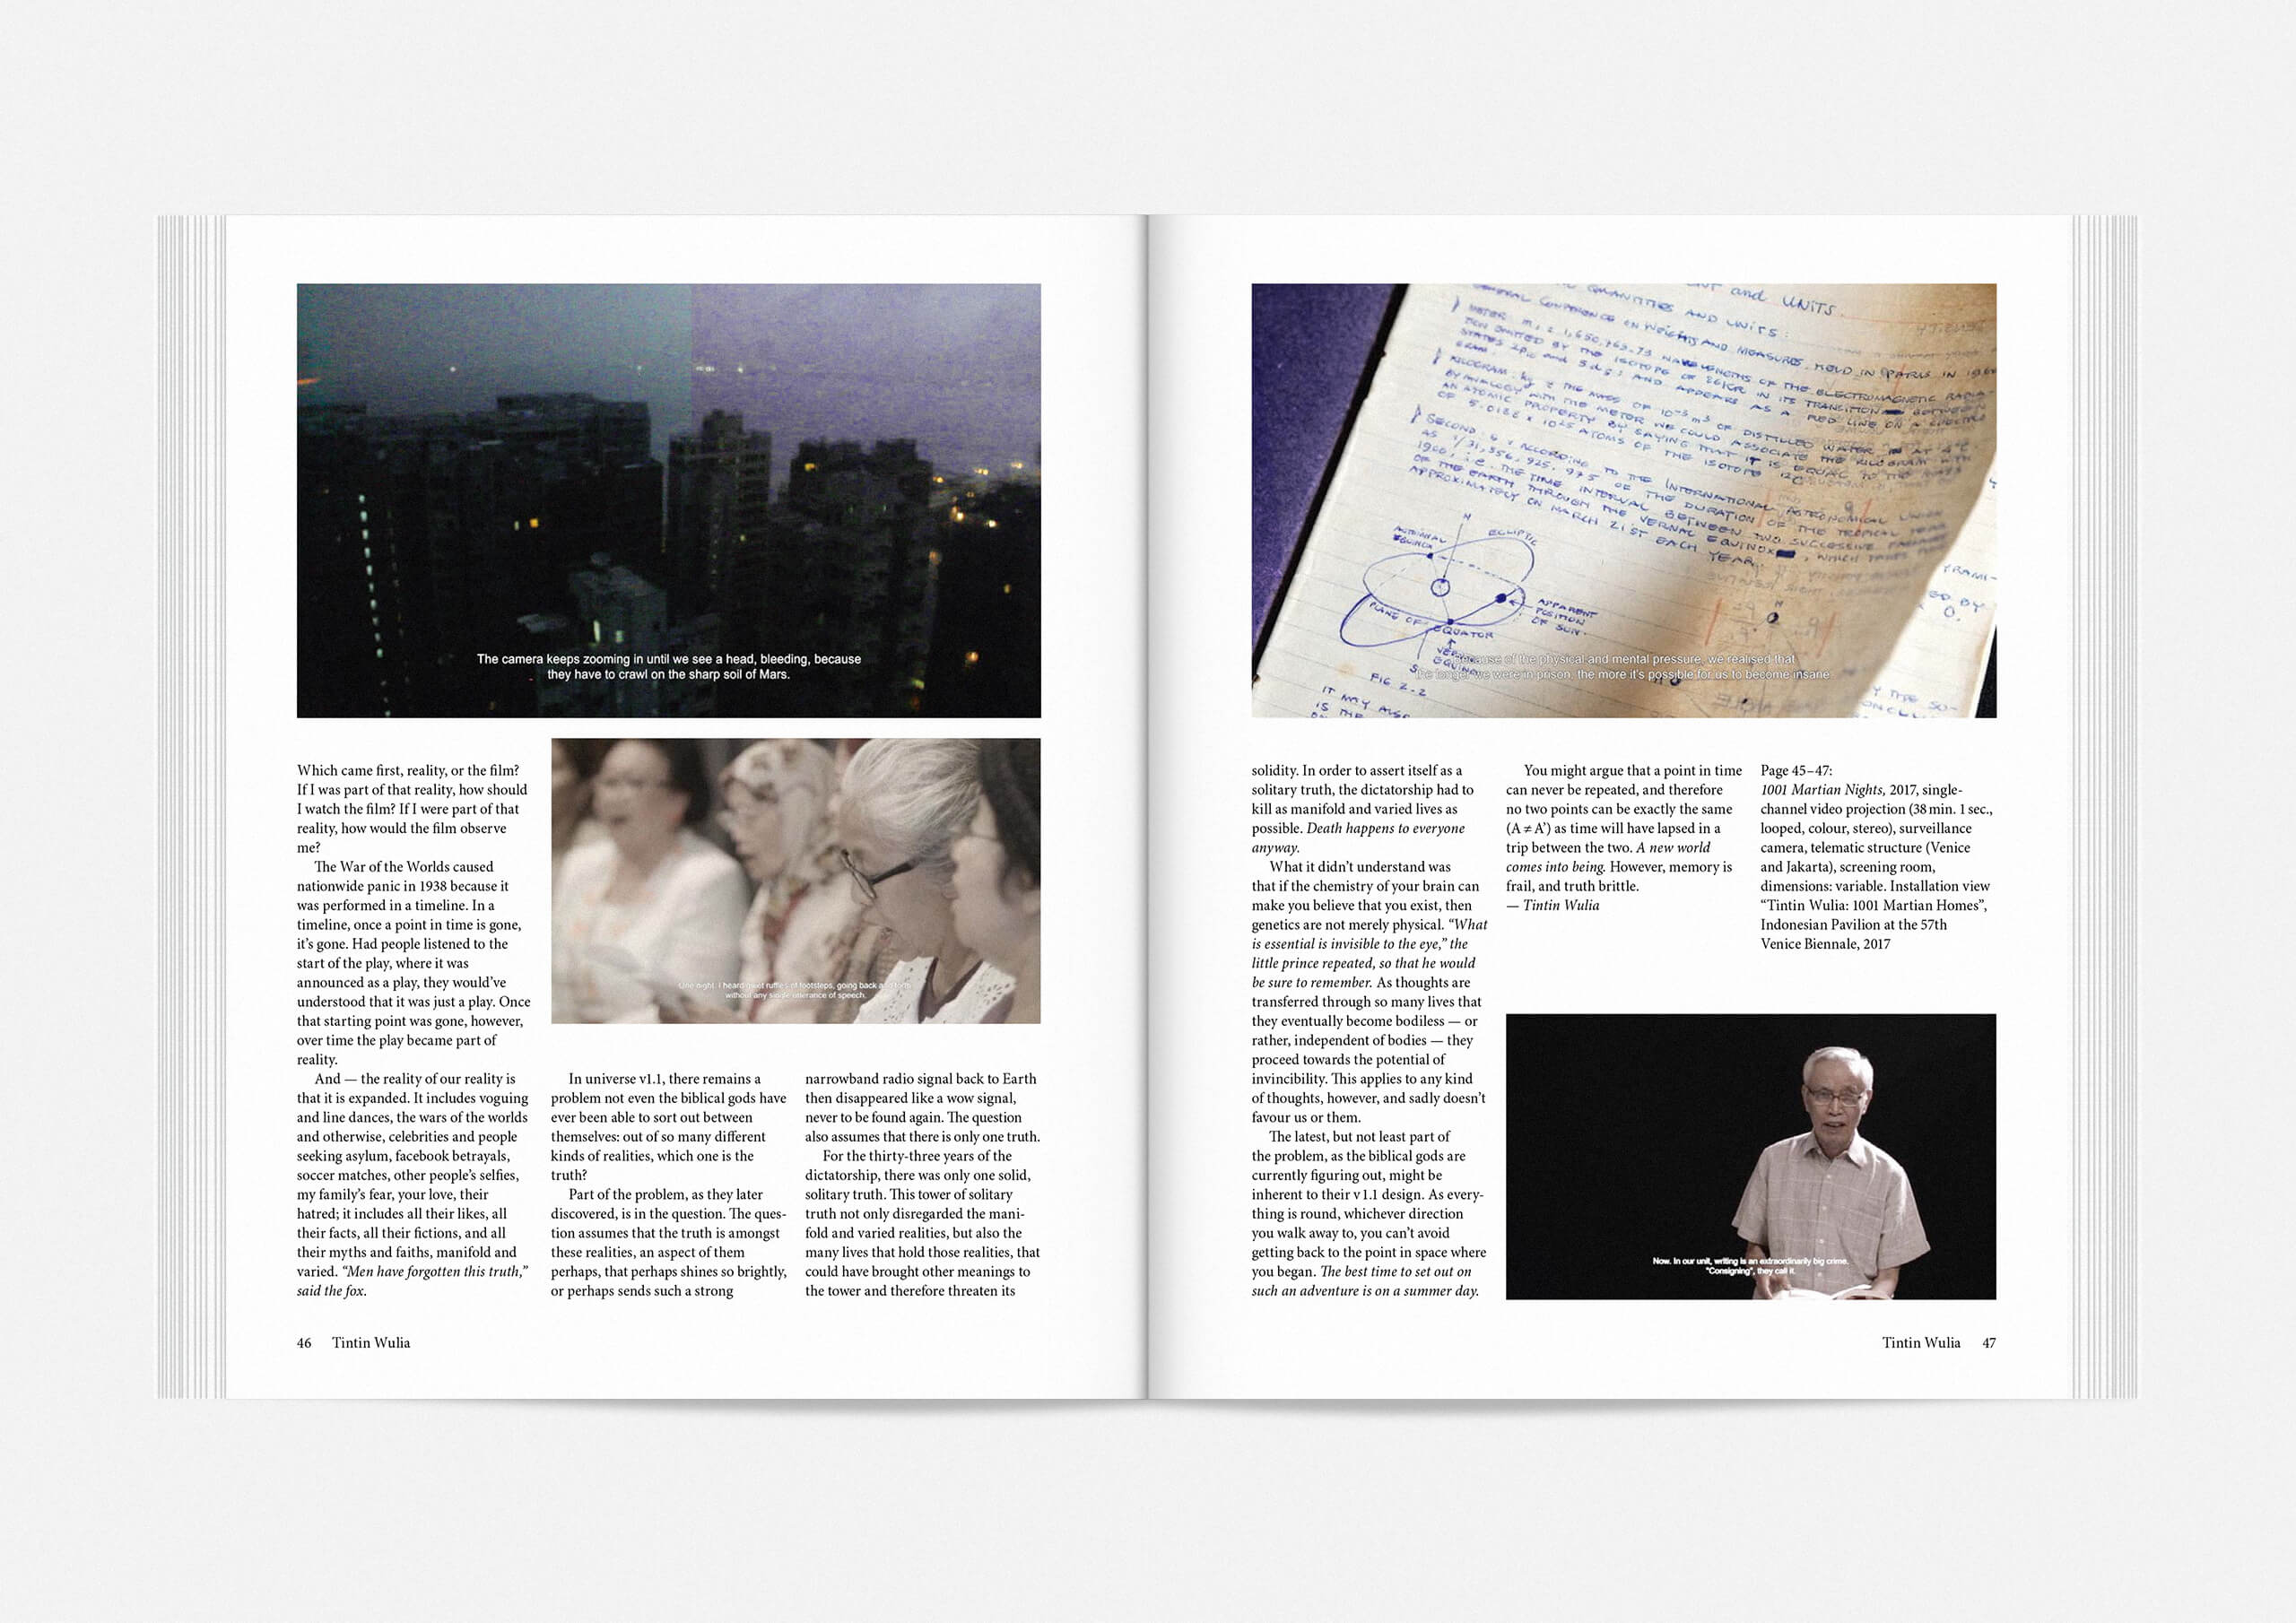 https://neuegestaltung.de/media/pages/clients/protocollum-issue-no-05/ddff57e262-1597415139/protocollum-5-page-4647-ng.jpg